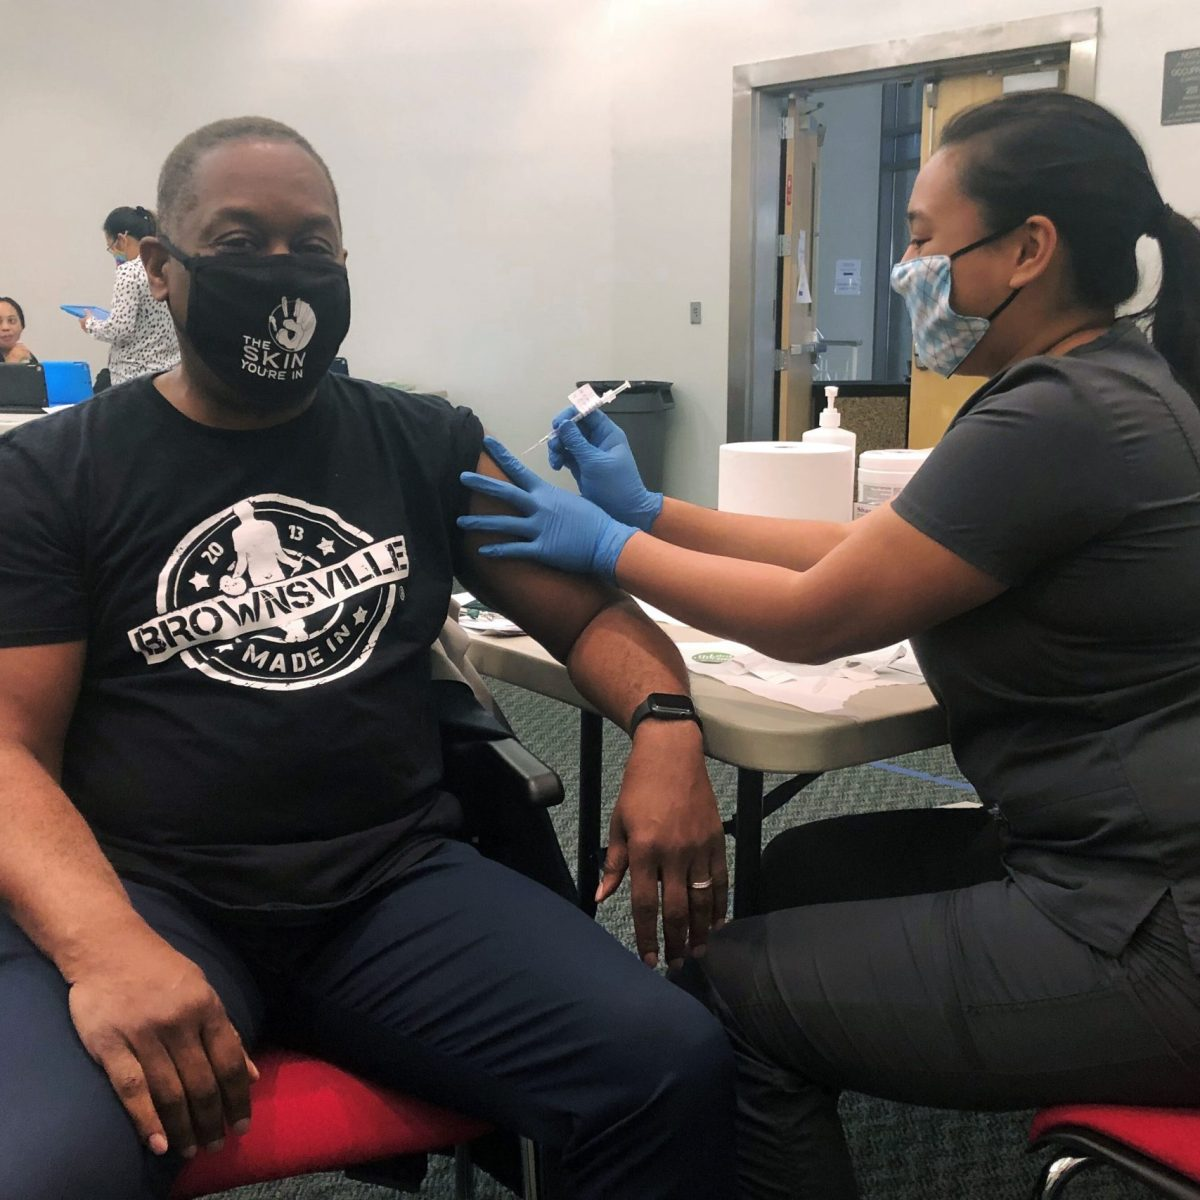 Houston B.O.S.S.E.S. spearhead '3,000 vaccines in 3 Days Crusade'